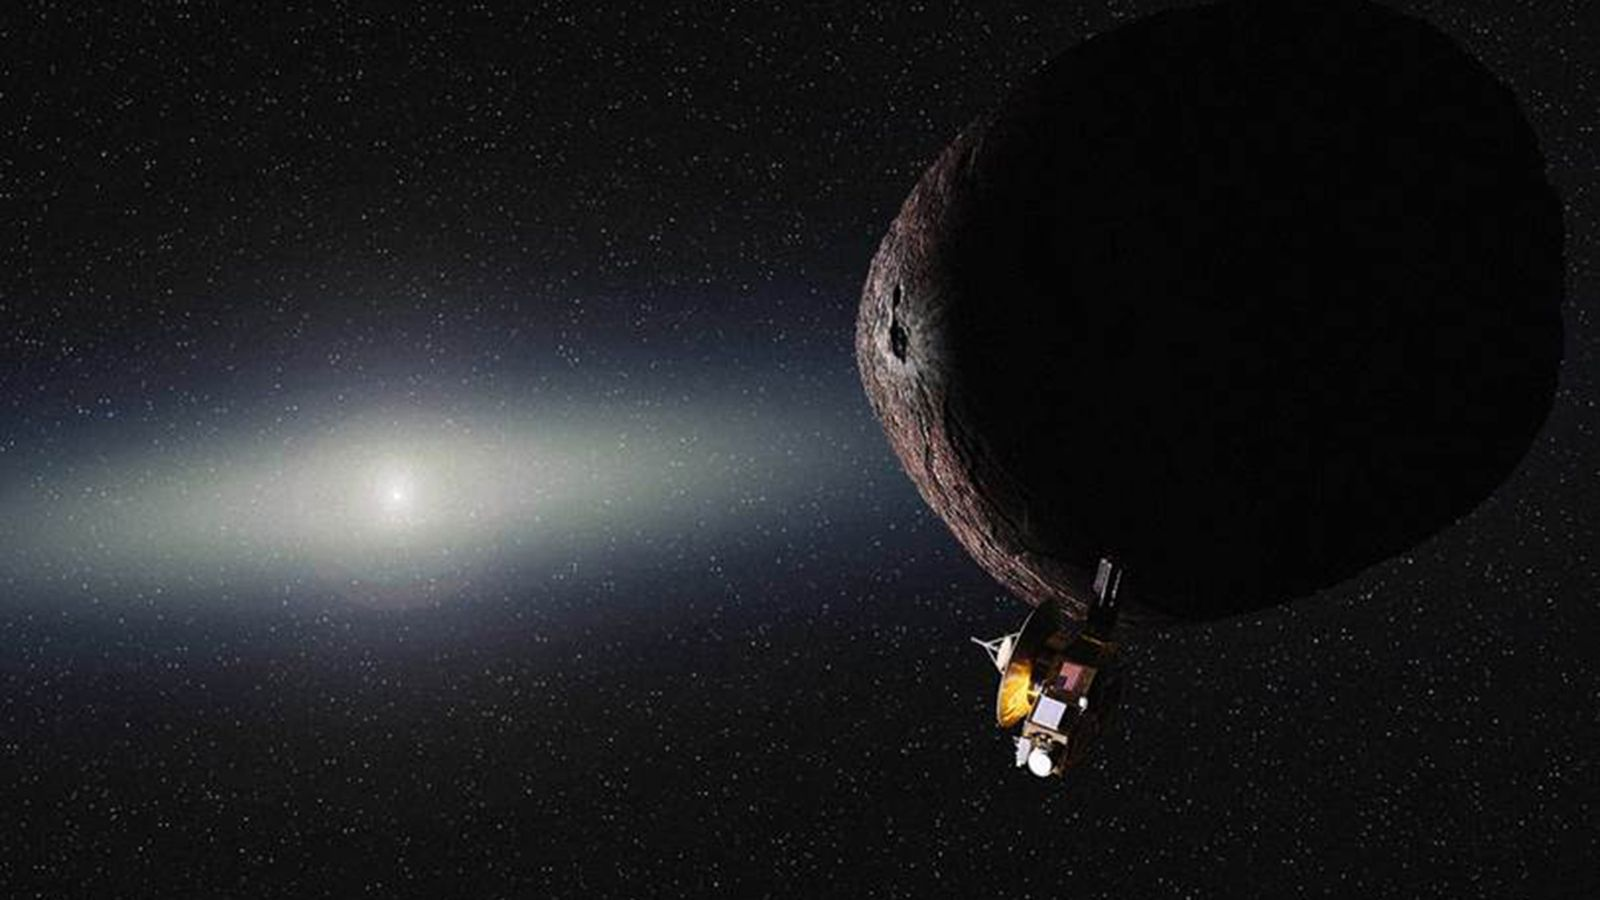 NASA extends the New Horizons mission to fly by another small world beyond Pluto